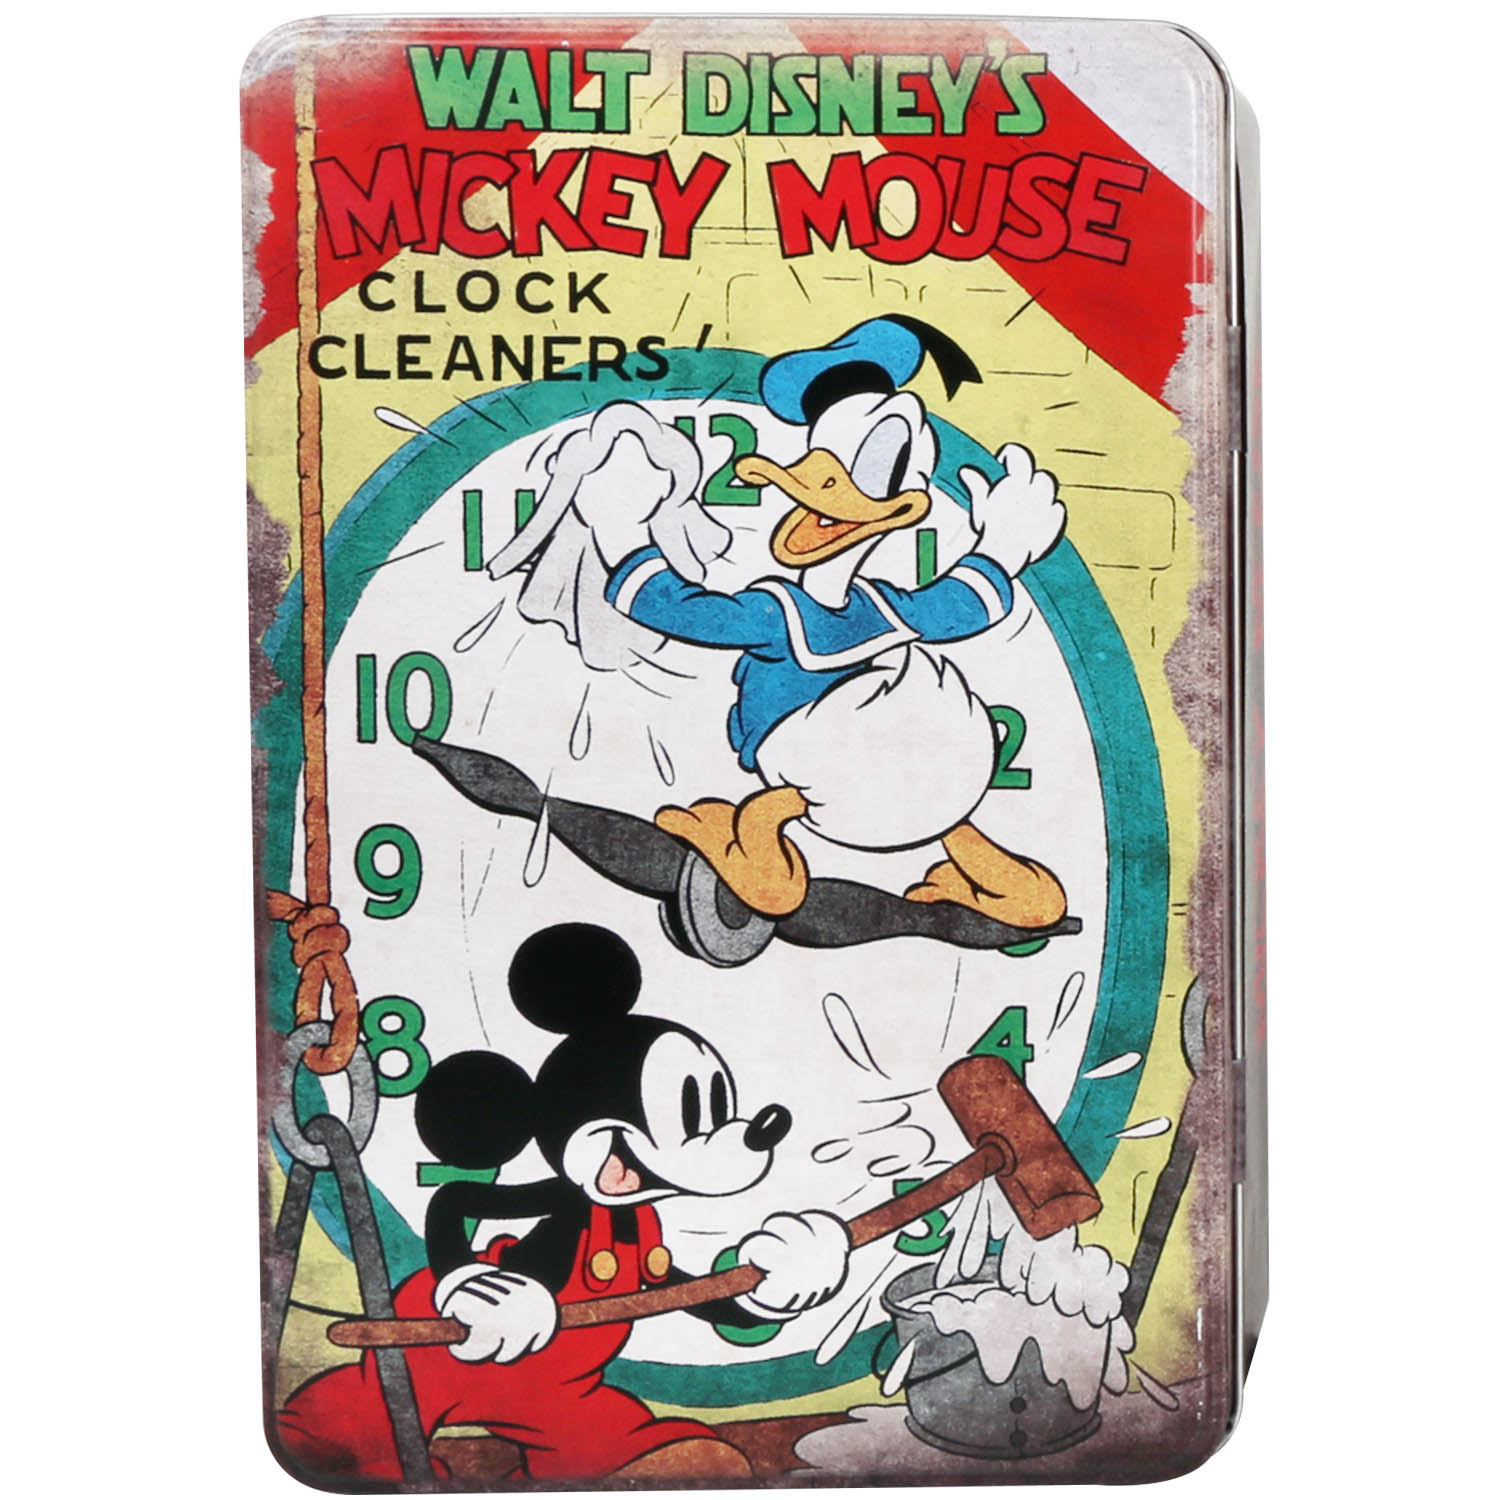 Mickey Mouse Clock Cleaners Design Small Tin Storage Container New